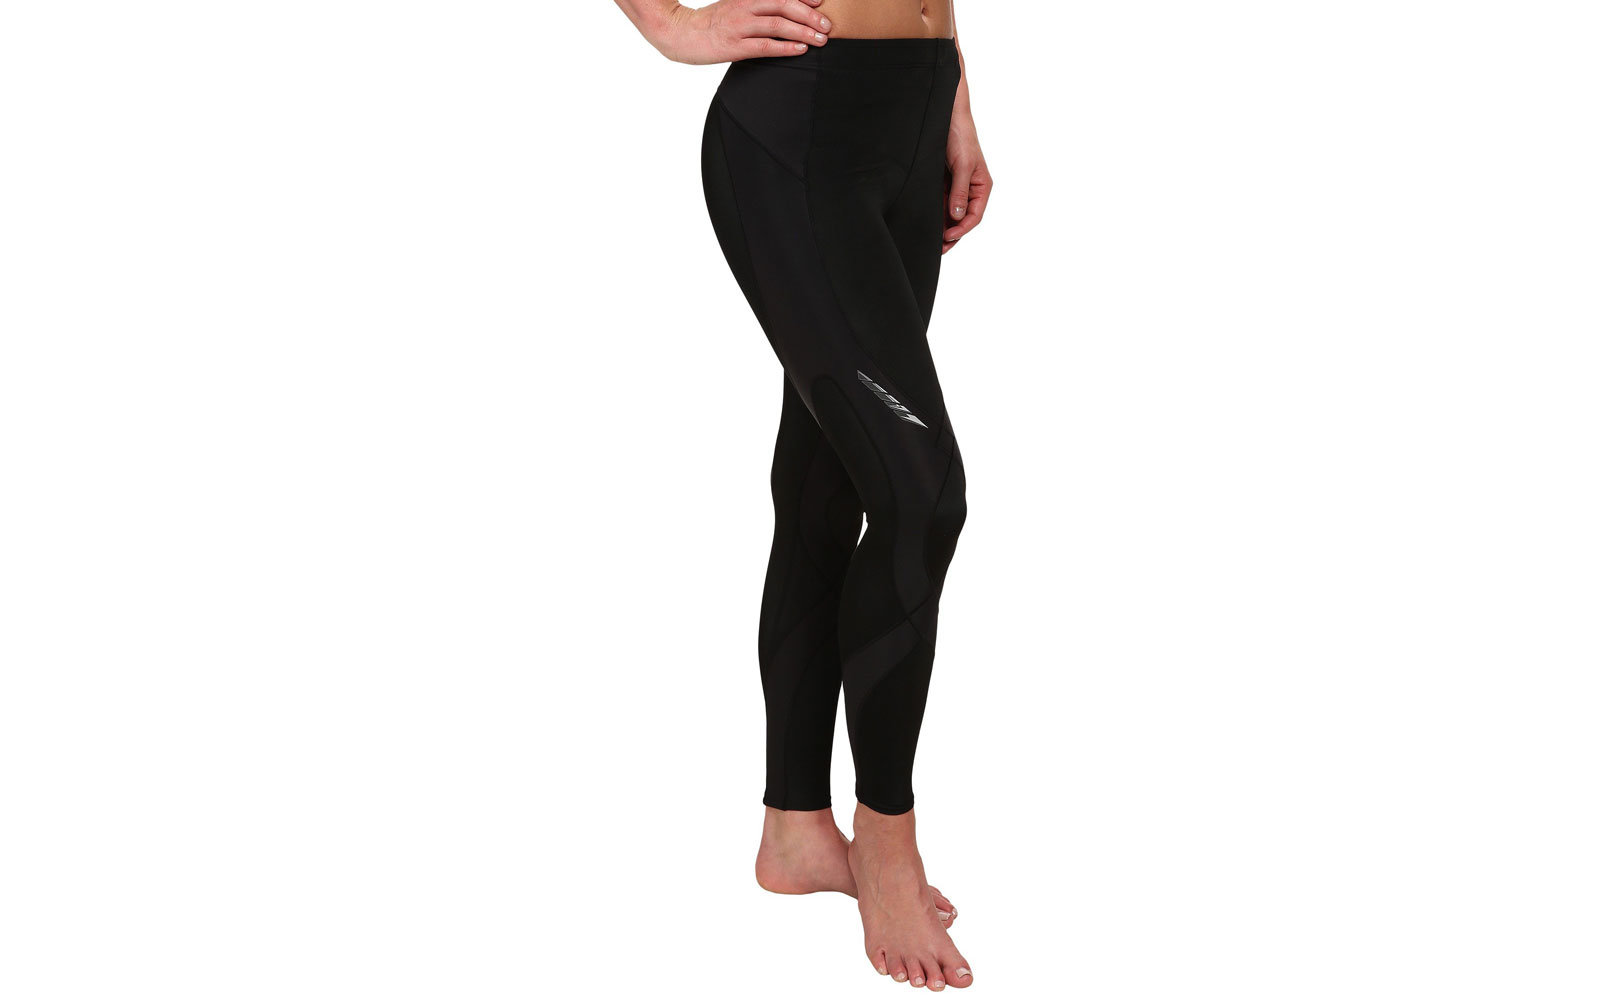 f1121fcf8e867 The Best Women's Compression Leggings for Travel | Travel + Leisure